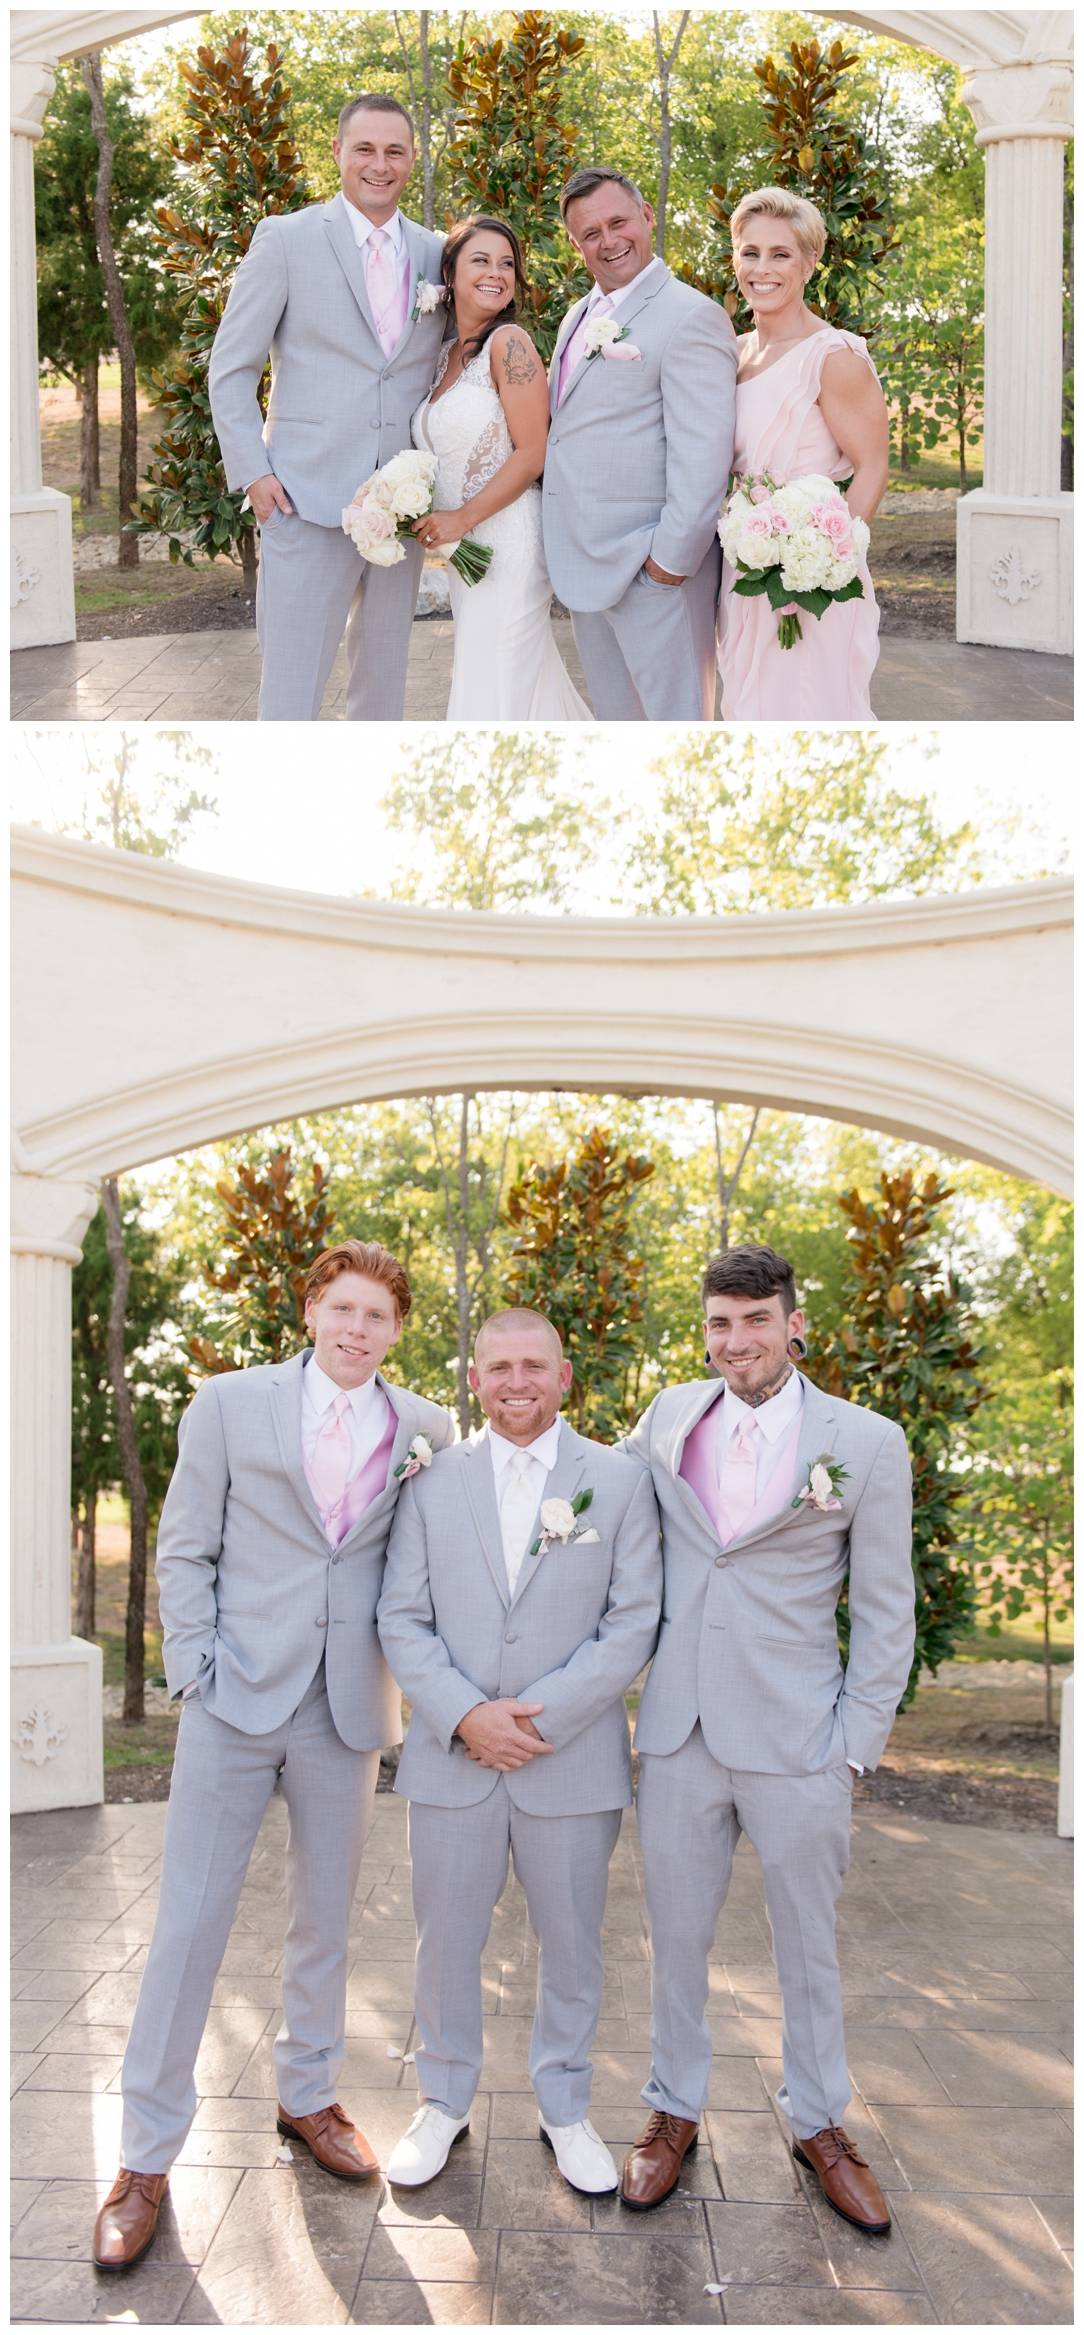 Family Formals at the Knotting Hill Place.jpg